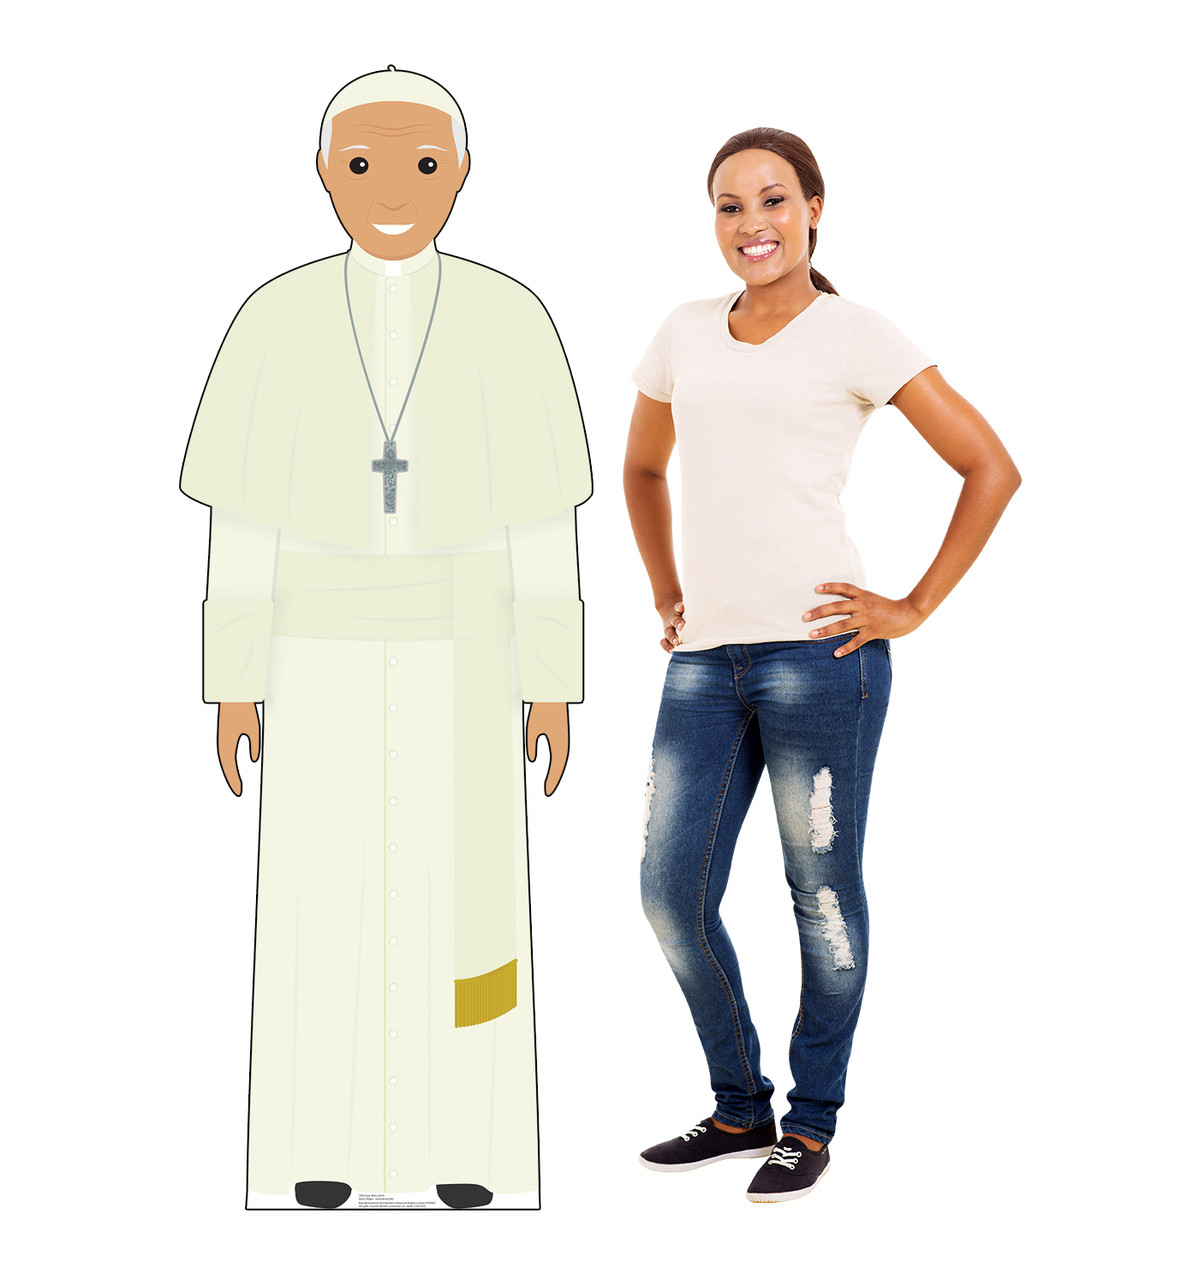 This is a life-size cardboard standee of the Pope in a white model.